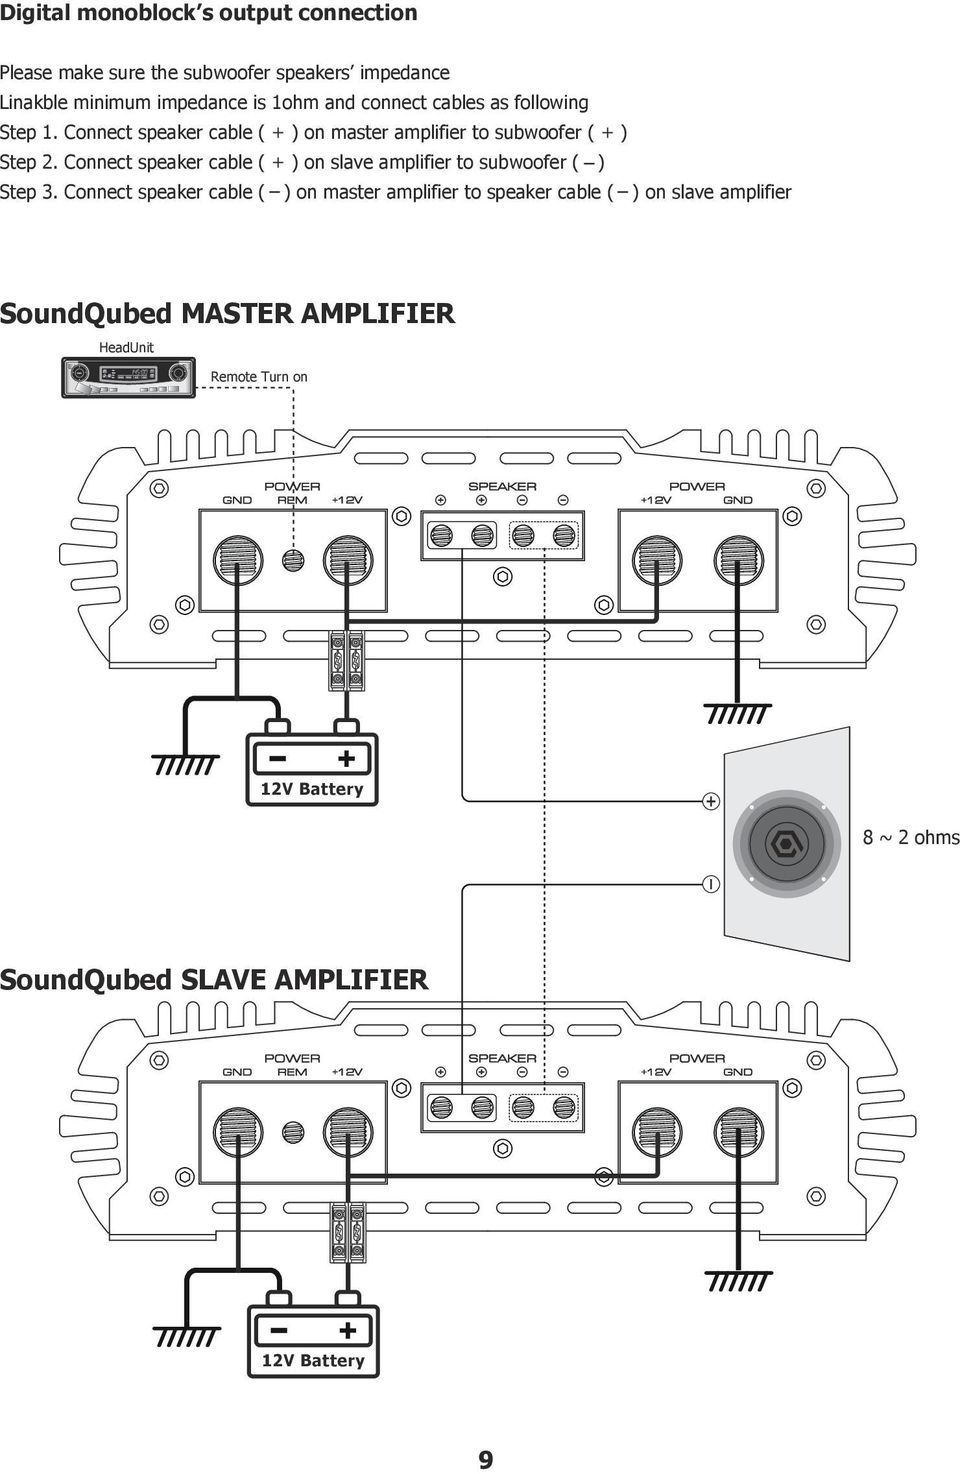 Q1 750 Q Q2 200 Q4 90 120 High Performance Amplifier Pdf Wiring Diagram 300watt Subwoofer Power Connect Speaker Cable On Slave To Step 3 11 Connection